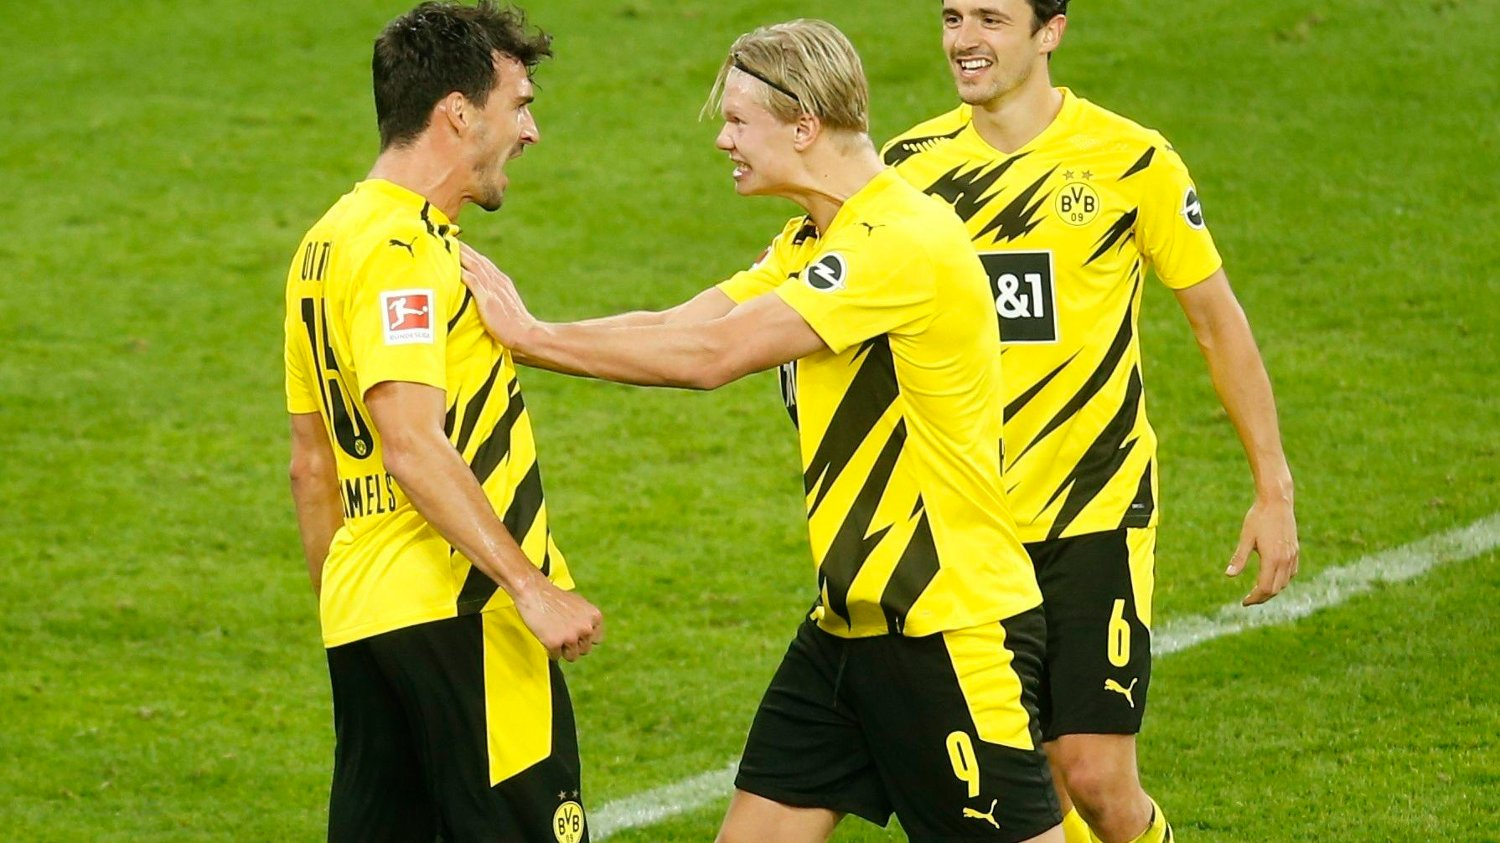 Dortmund's German defender Mats Hummels / DFL REGULATIONS PROHIBIT ANY USE OF PHOTOGRAPHS AS IMAGE SEQUENCES AND/OR QUASI-VIDEO